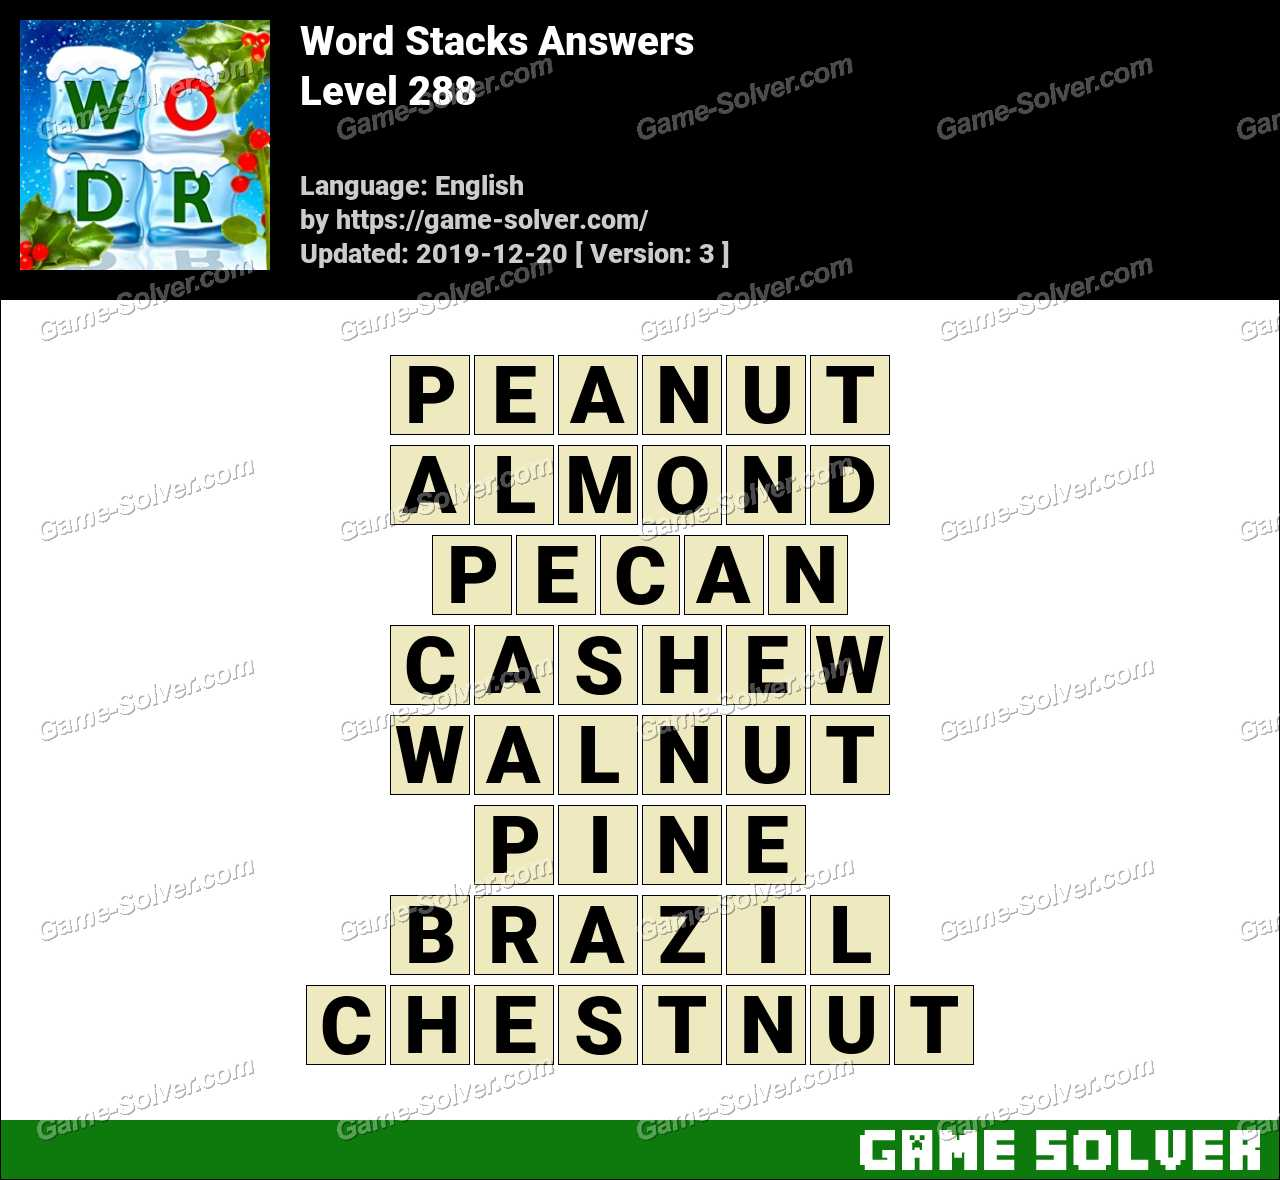 Word Stacks Level 288 Answers